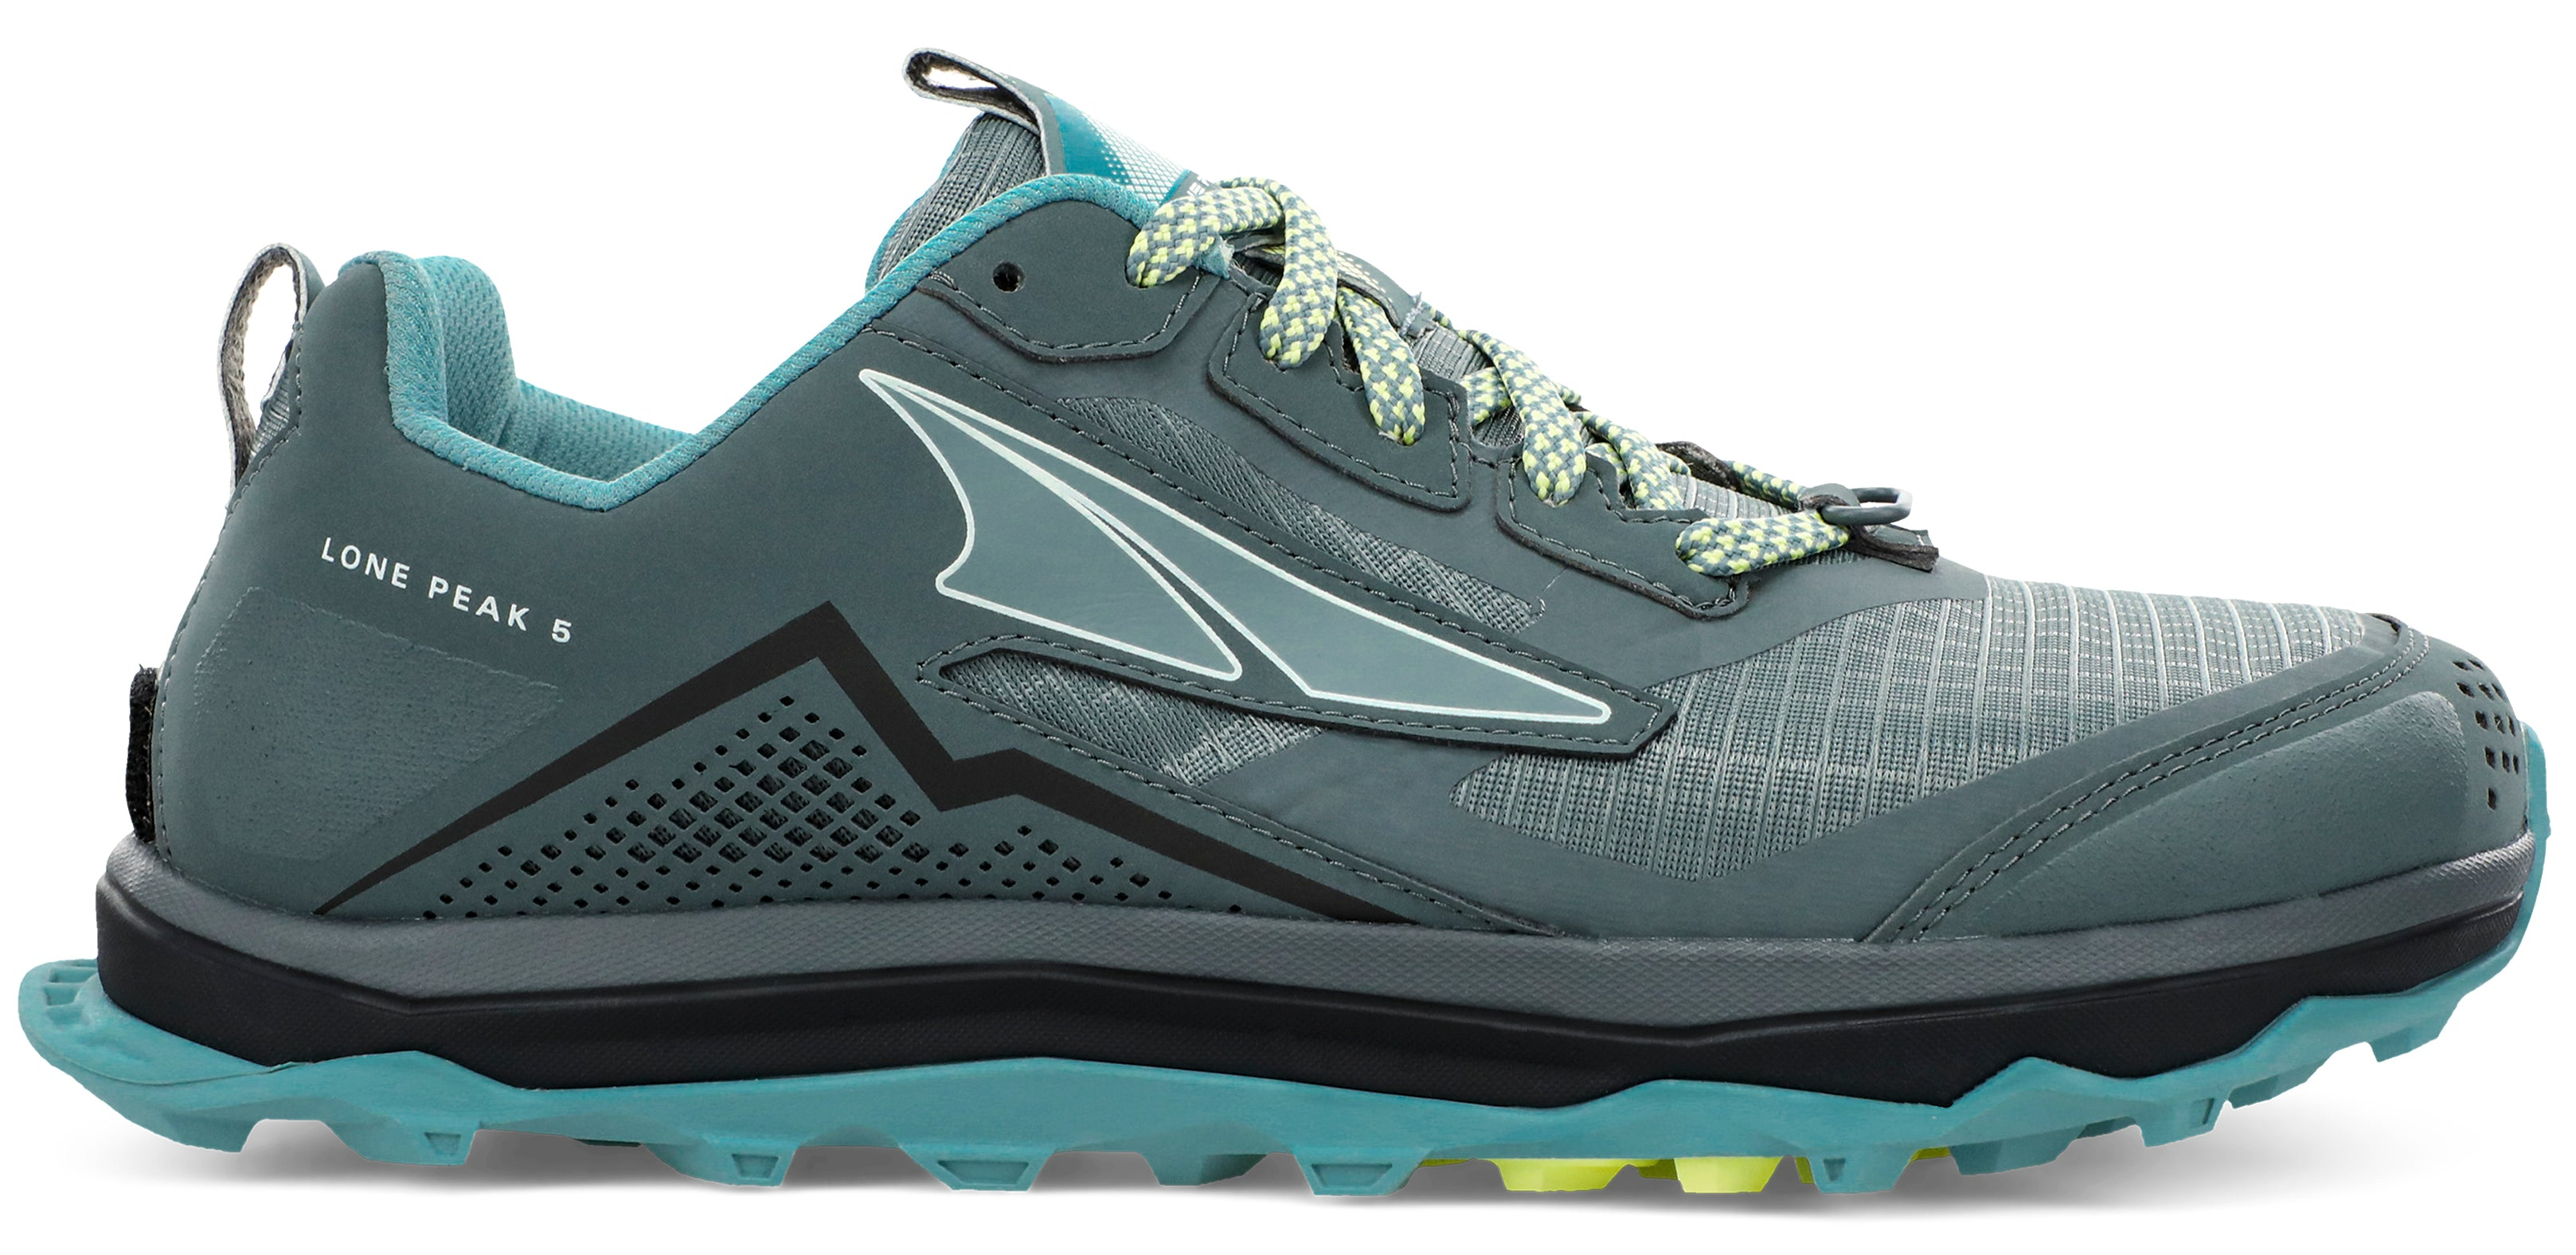 Altra Women's Lone Peak 5 Trail Running Shoe in Balsam Green from the side